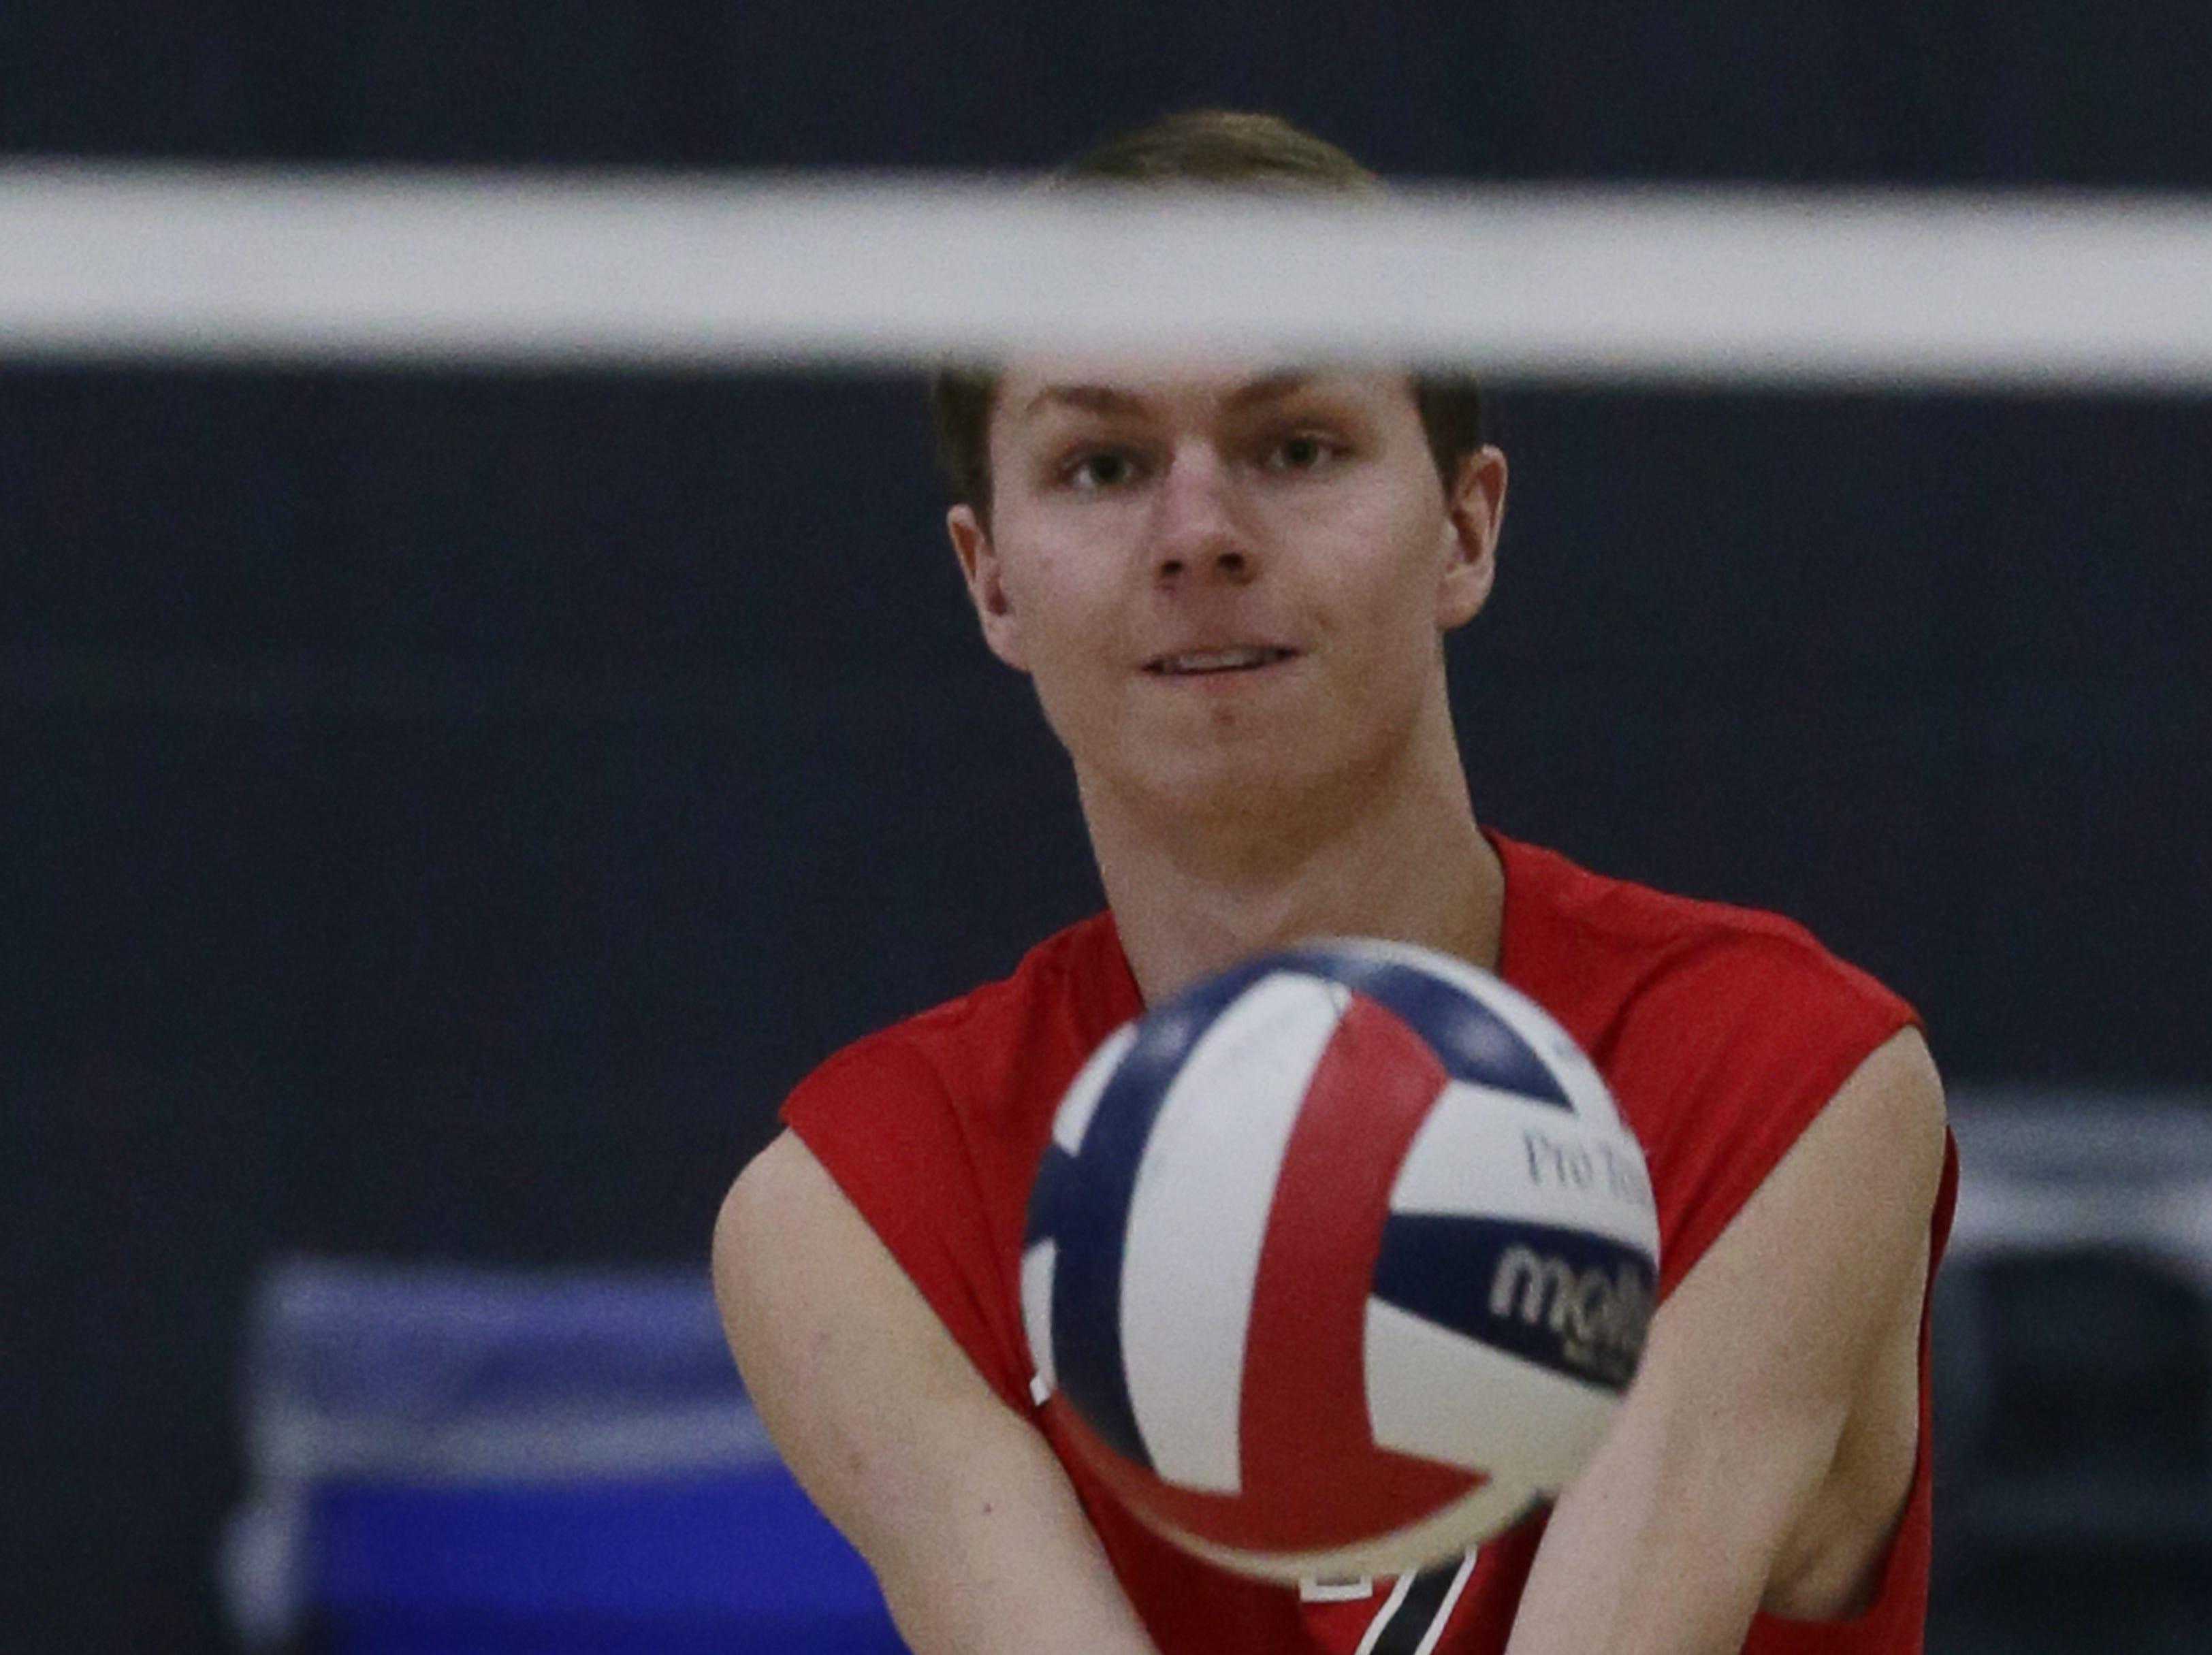 Kimberly's Jacob Schiessl bumps up the ball during their game.  Kimberly Papermakers played Kenosha Indian Trail Hawks in Division 1 WIAA boys volleyball playoff semi-final, Saturday, November 10, 2018 at Wisconsin Lutheran College in Milwaukee, Wis. Joe Sienkiewicz/USA Today NETWORK-Wisconsin